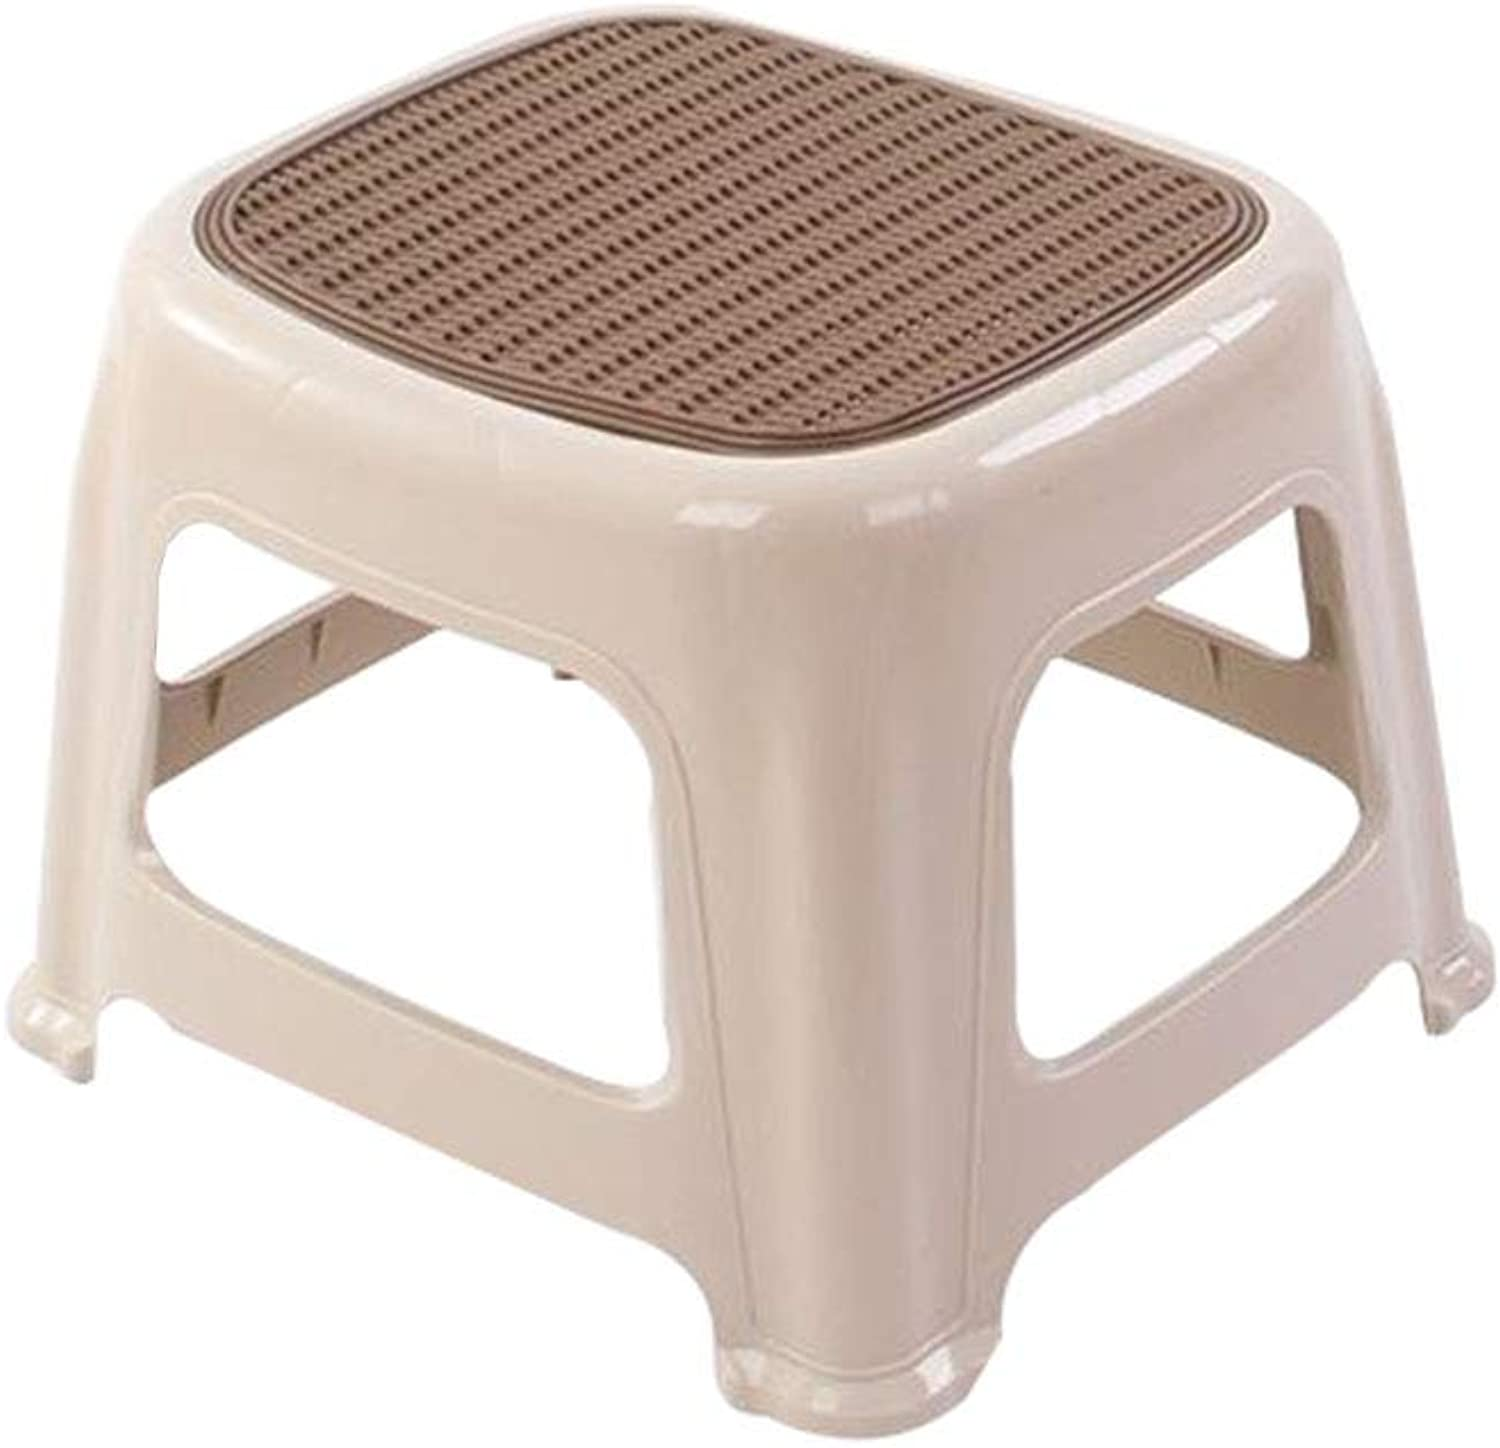 AGL-Bathroom Stools Dining Stool Stacked Save Space Bathroom Non-Slip High Stool Small Stool 3 Sizes 3 colors (color   C, Size   29X32X39cm)